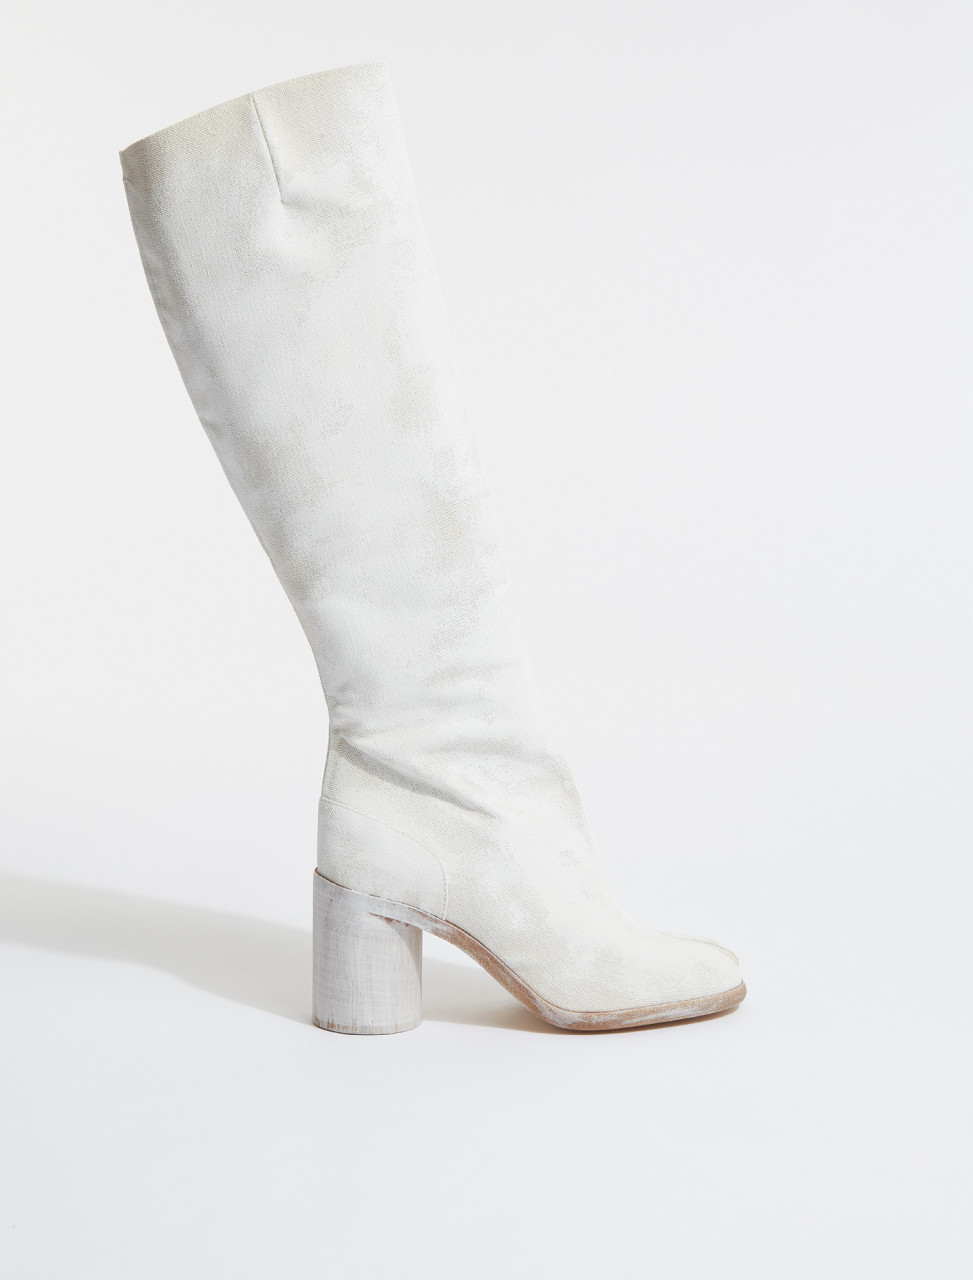 S34WW0057 MAISON MARGIELA TABI KNEE HIGH BOOTS IN WHITE SAND